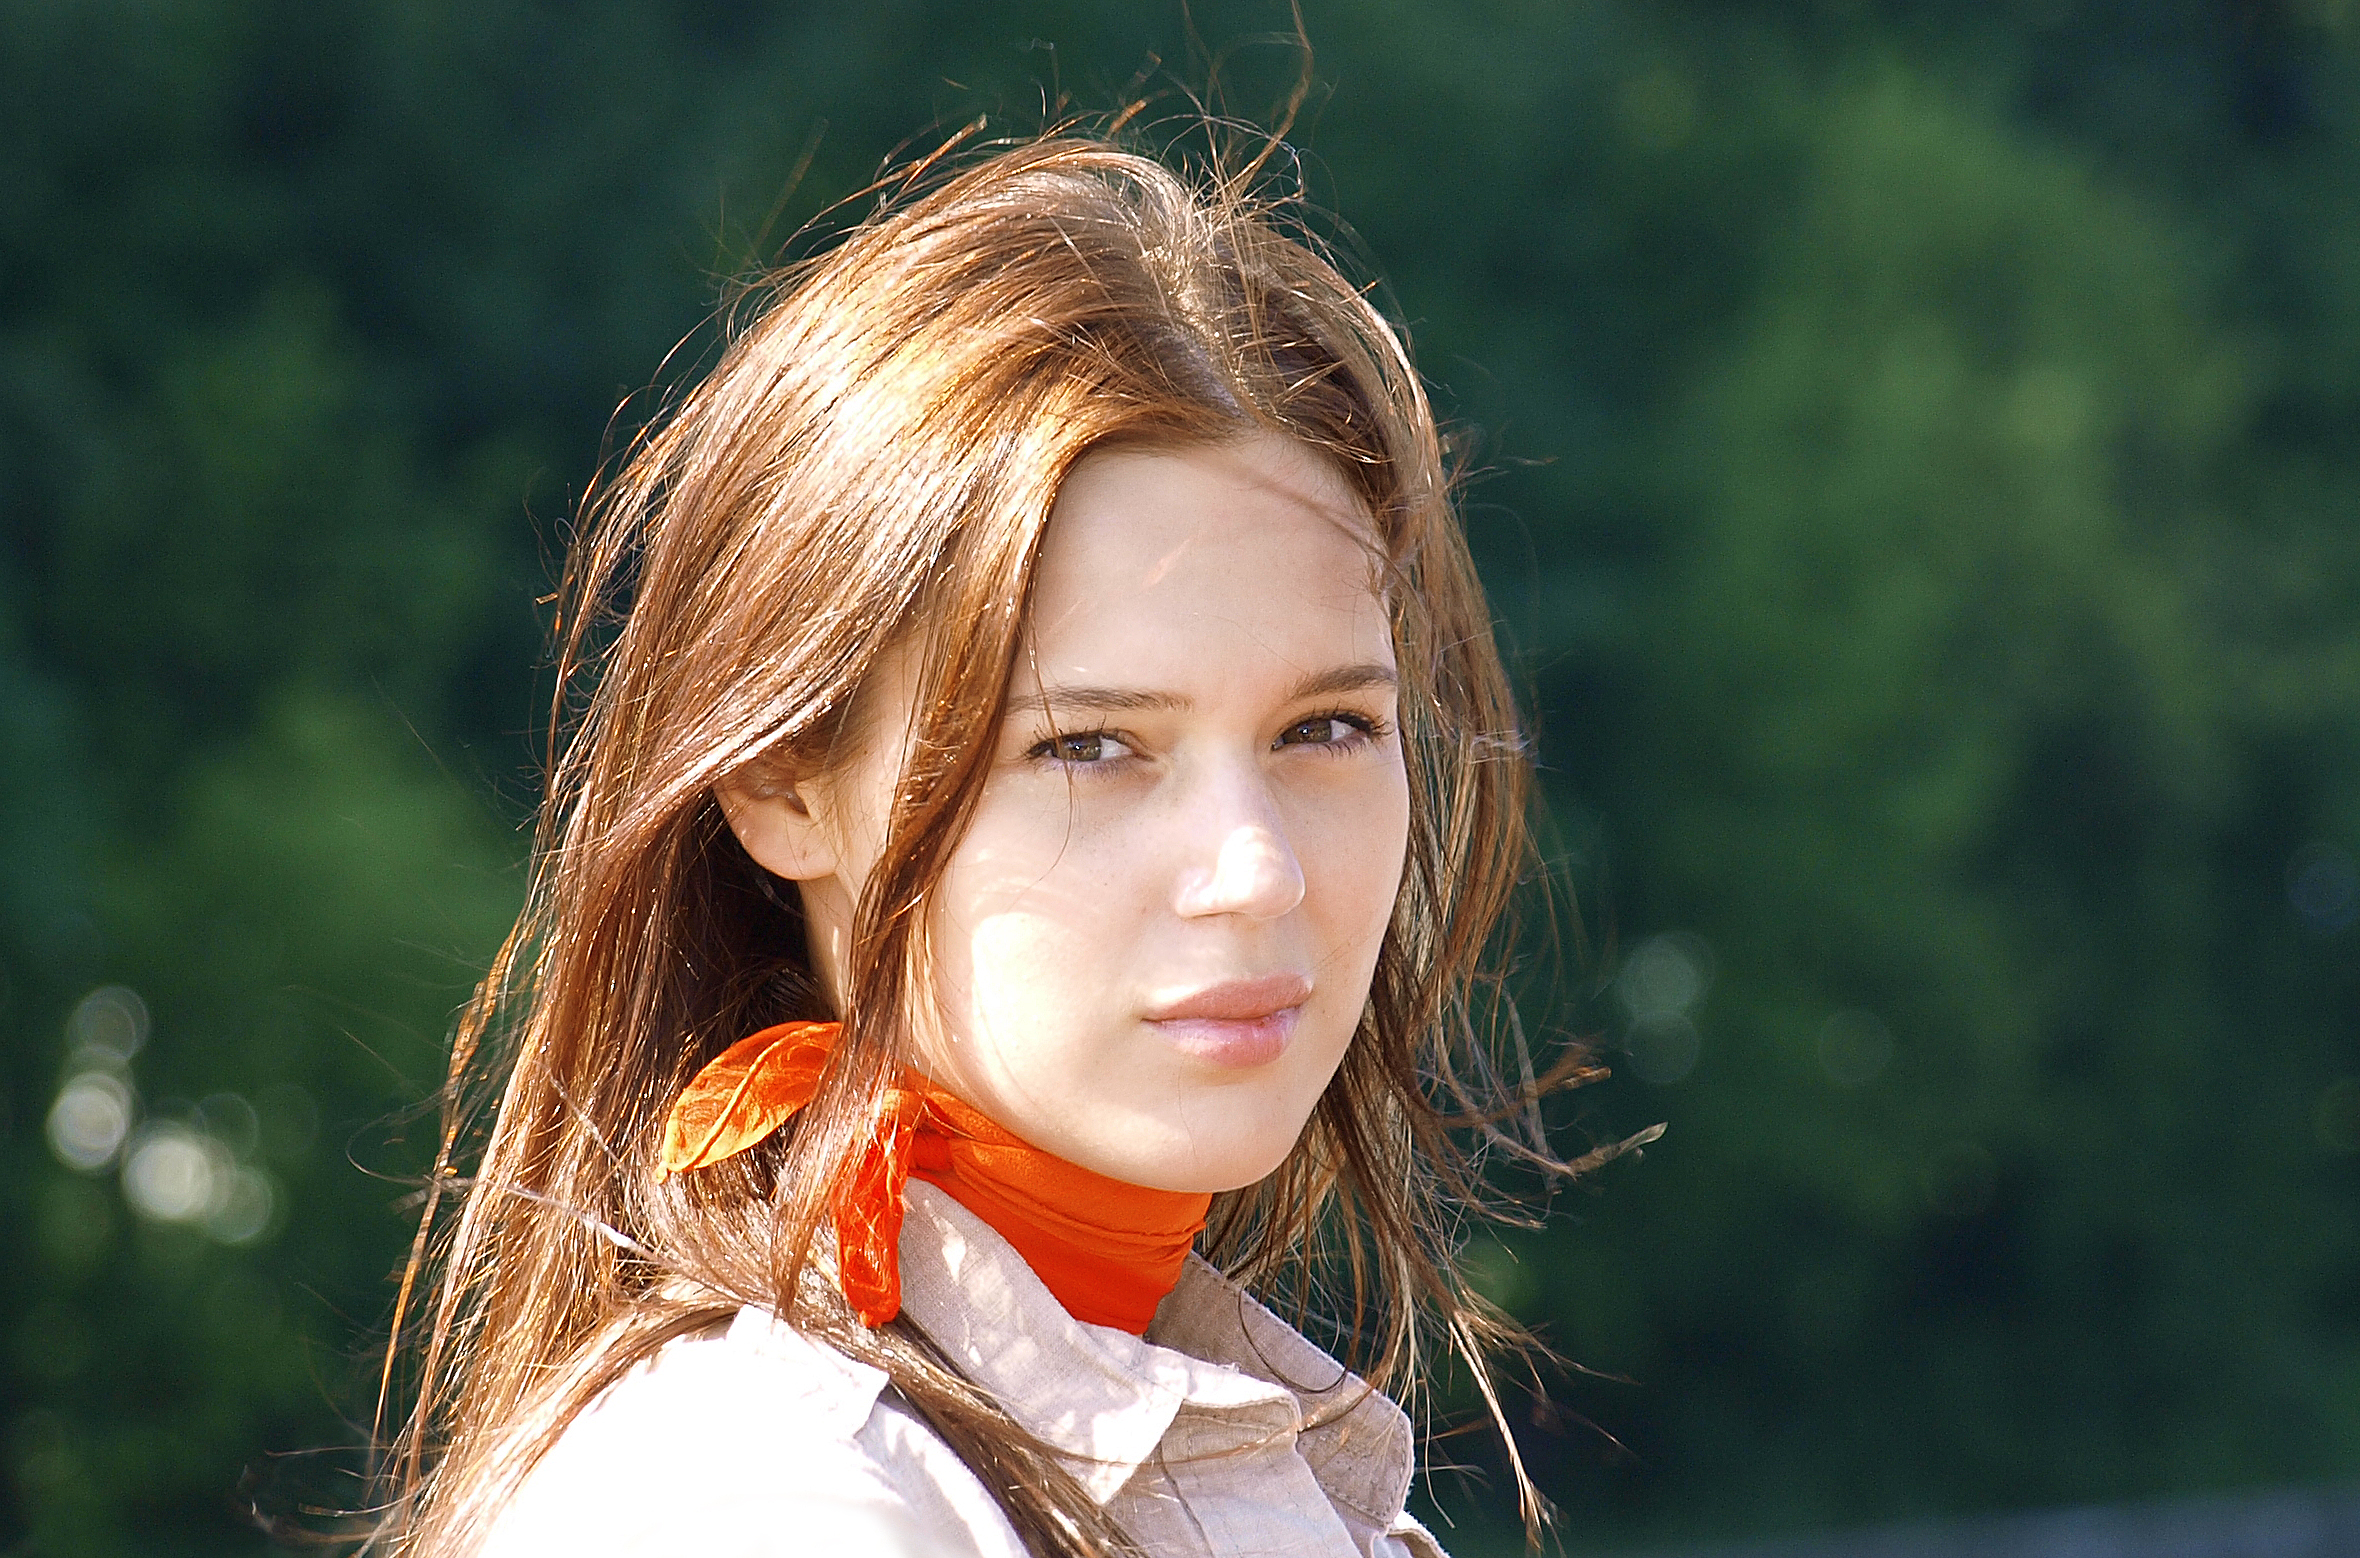 Woman_with_a_light_brown_blouse_and_a_red_scarf.jpg